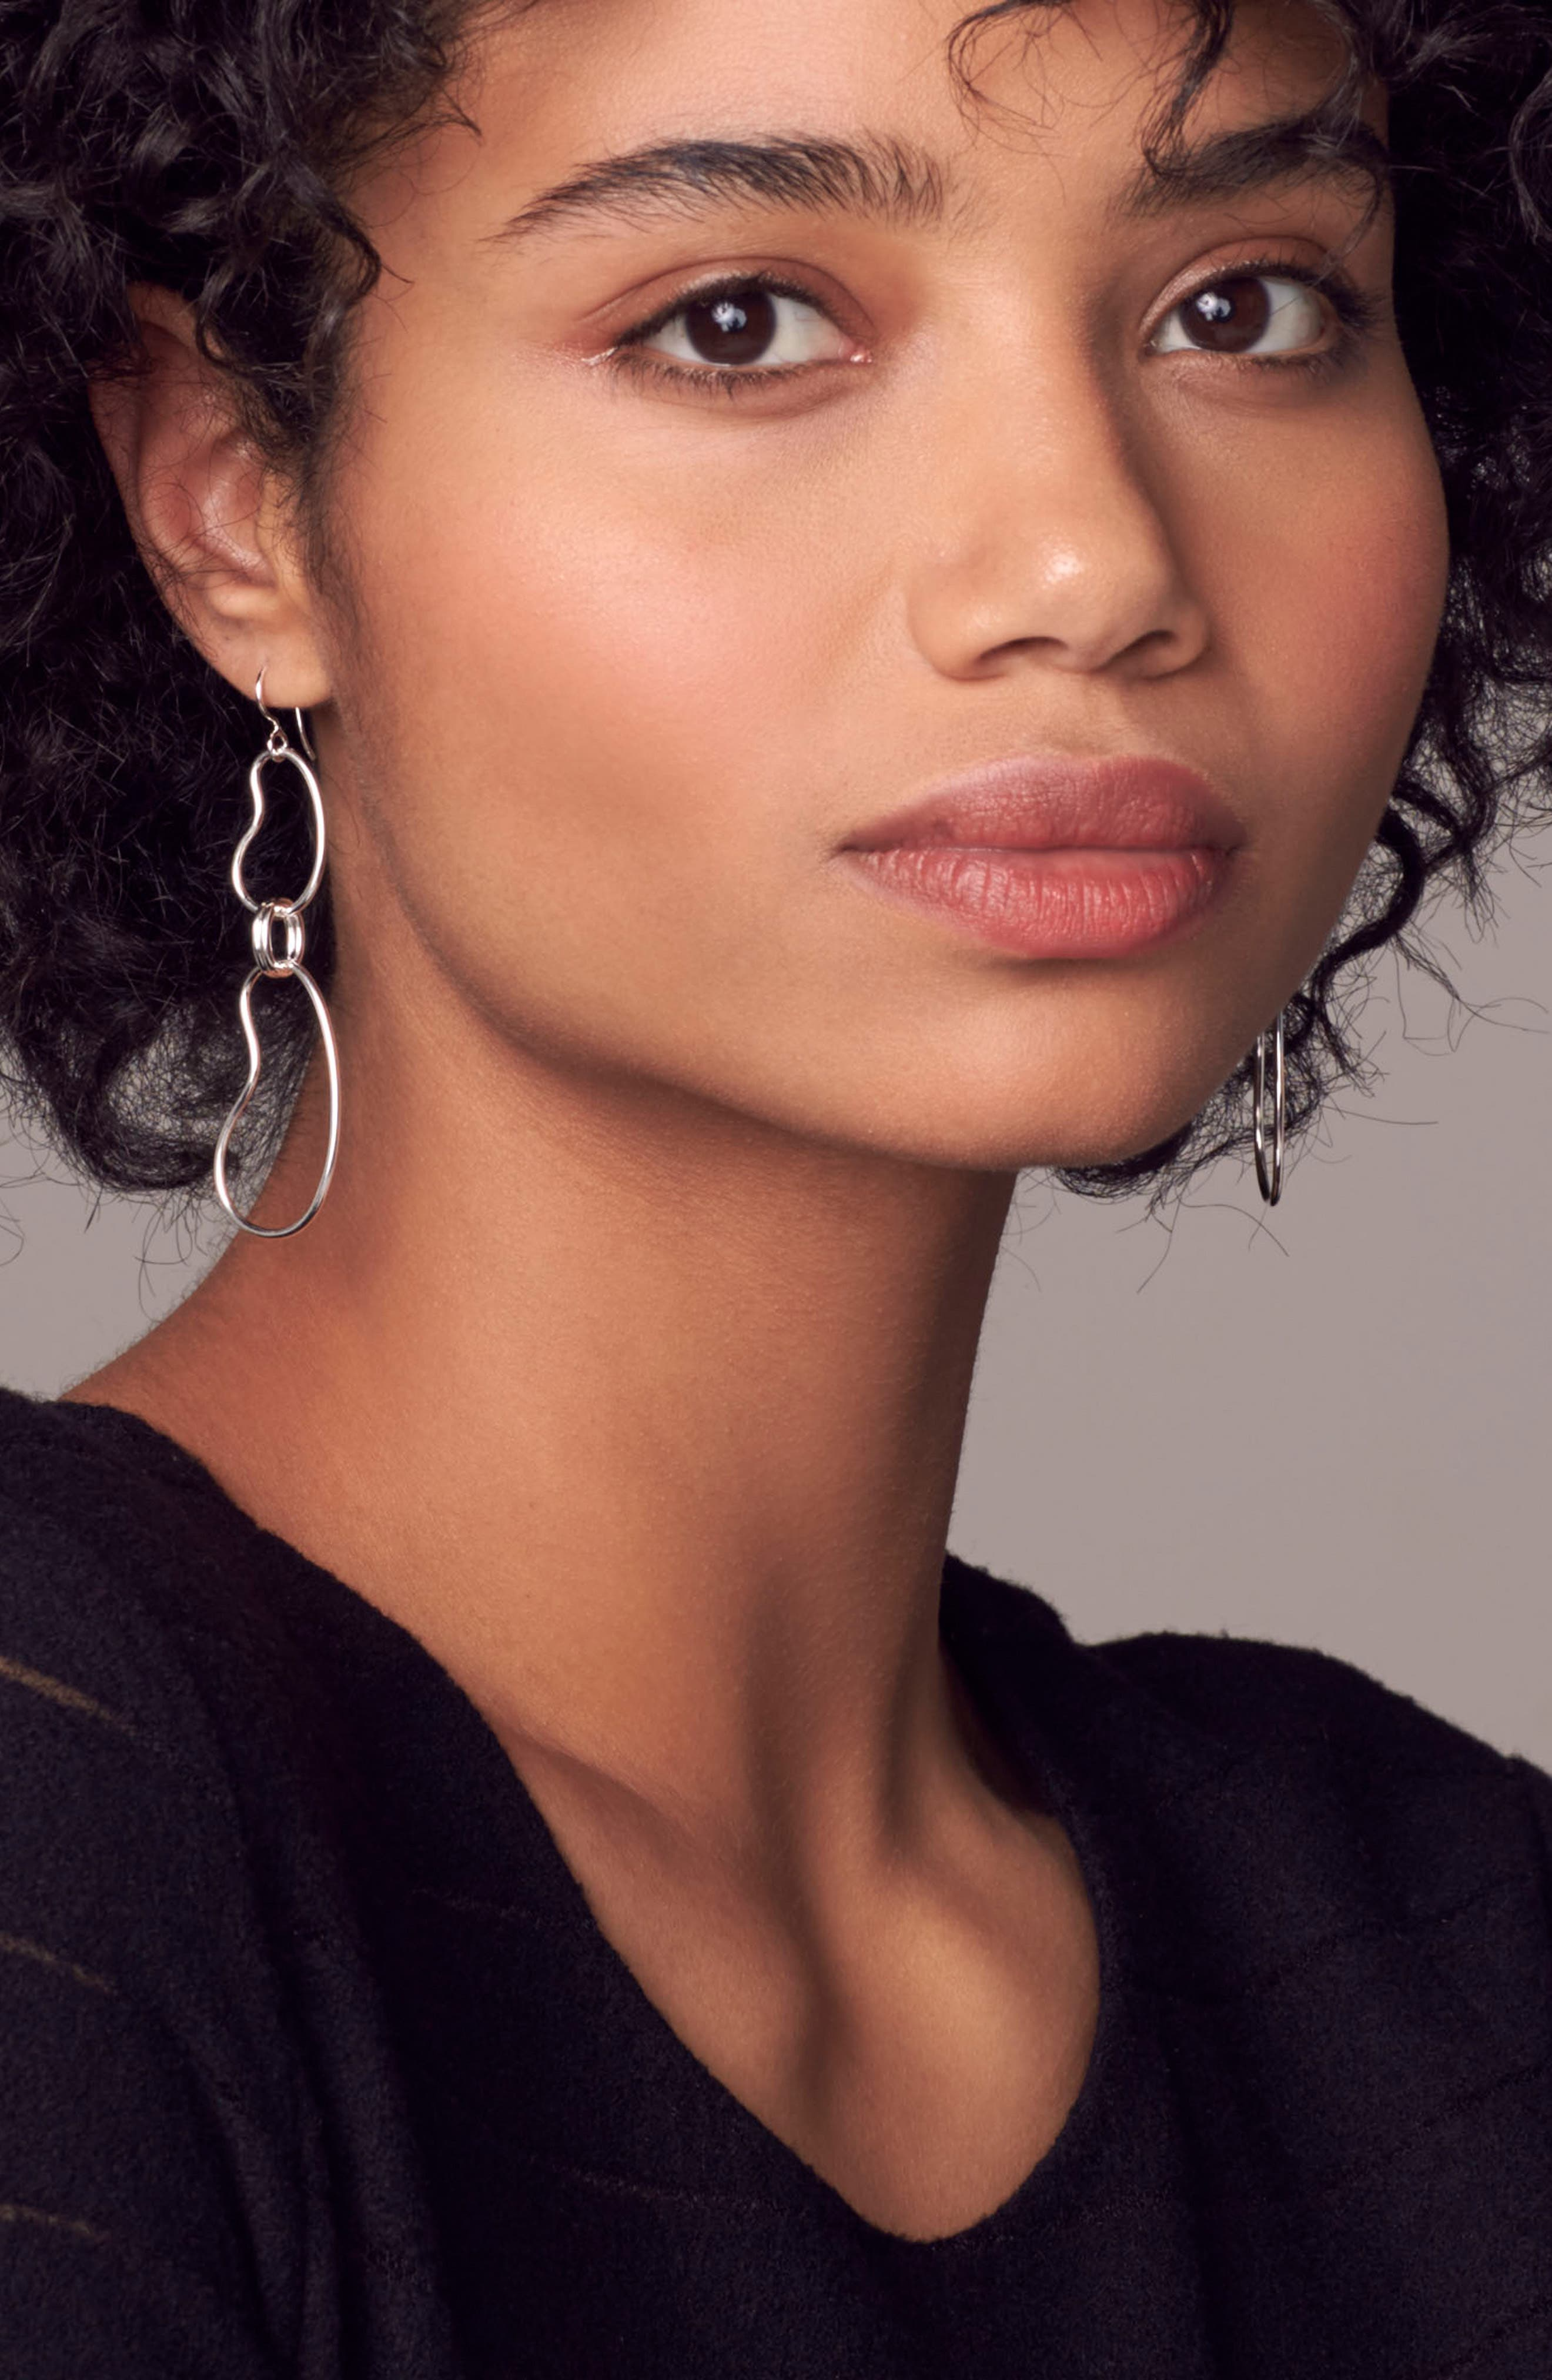 Classico Kidney Oval Link Earrings,                             Alternate thumbnail 3, color,                             040